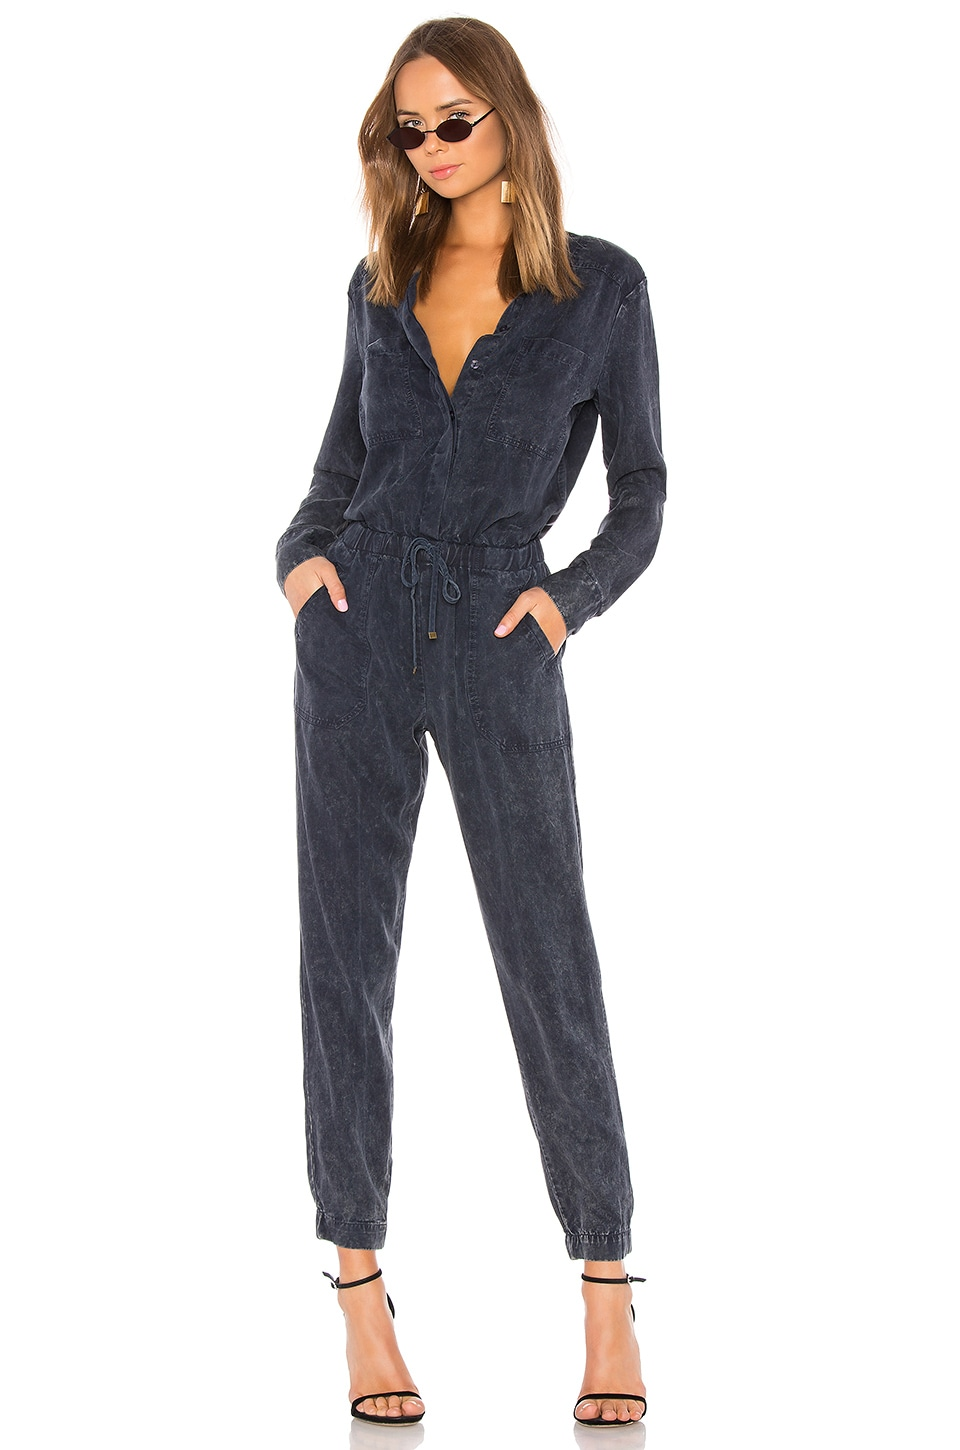 YFB CLOTHING Everest Jumpsuit in Navy AW